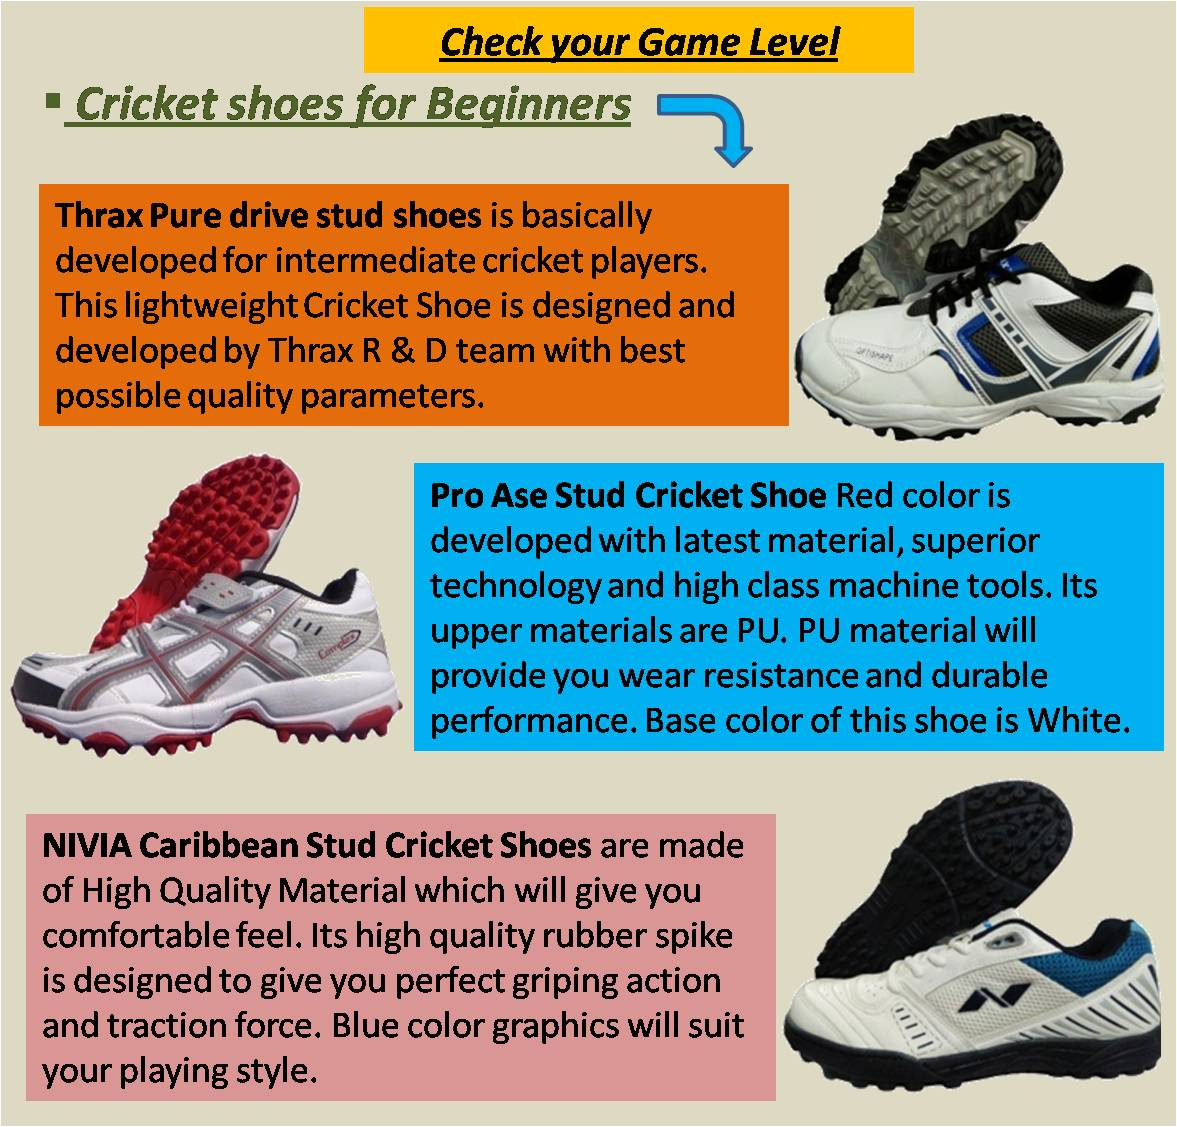 Cricket shoes for Beginners 2